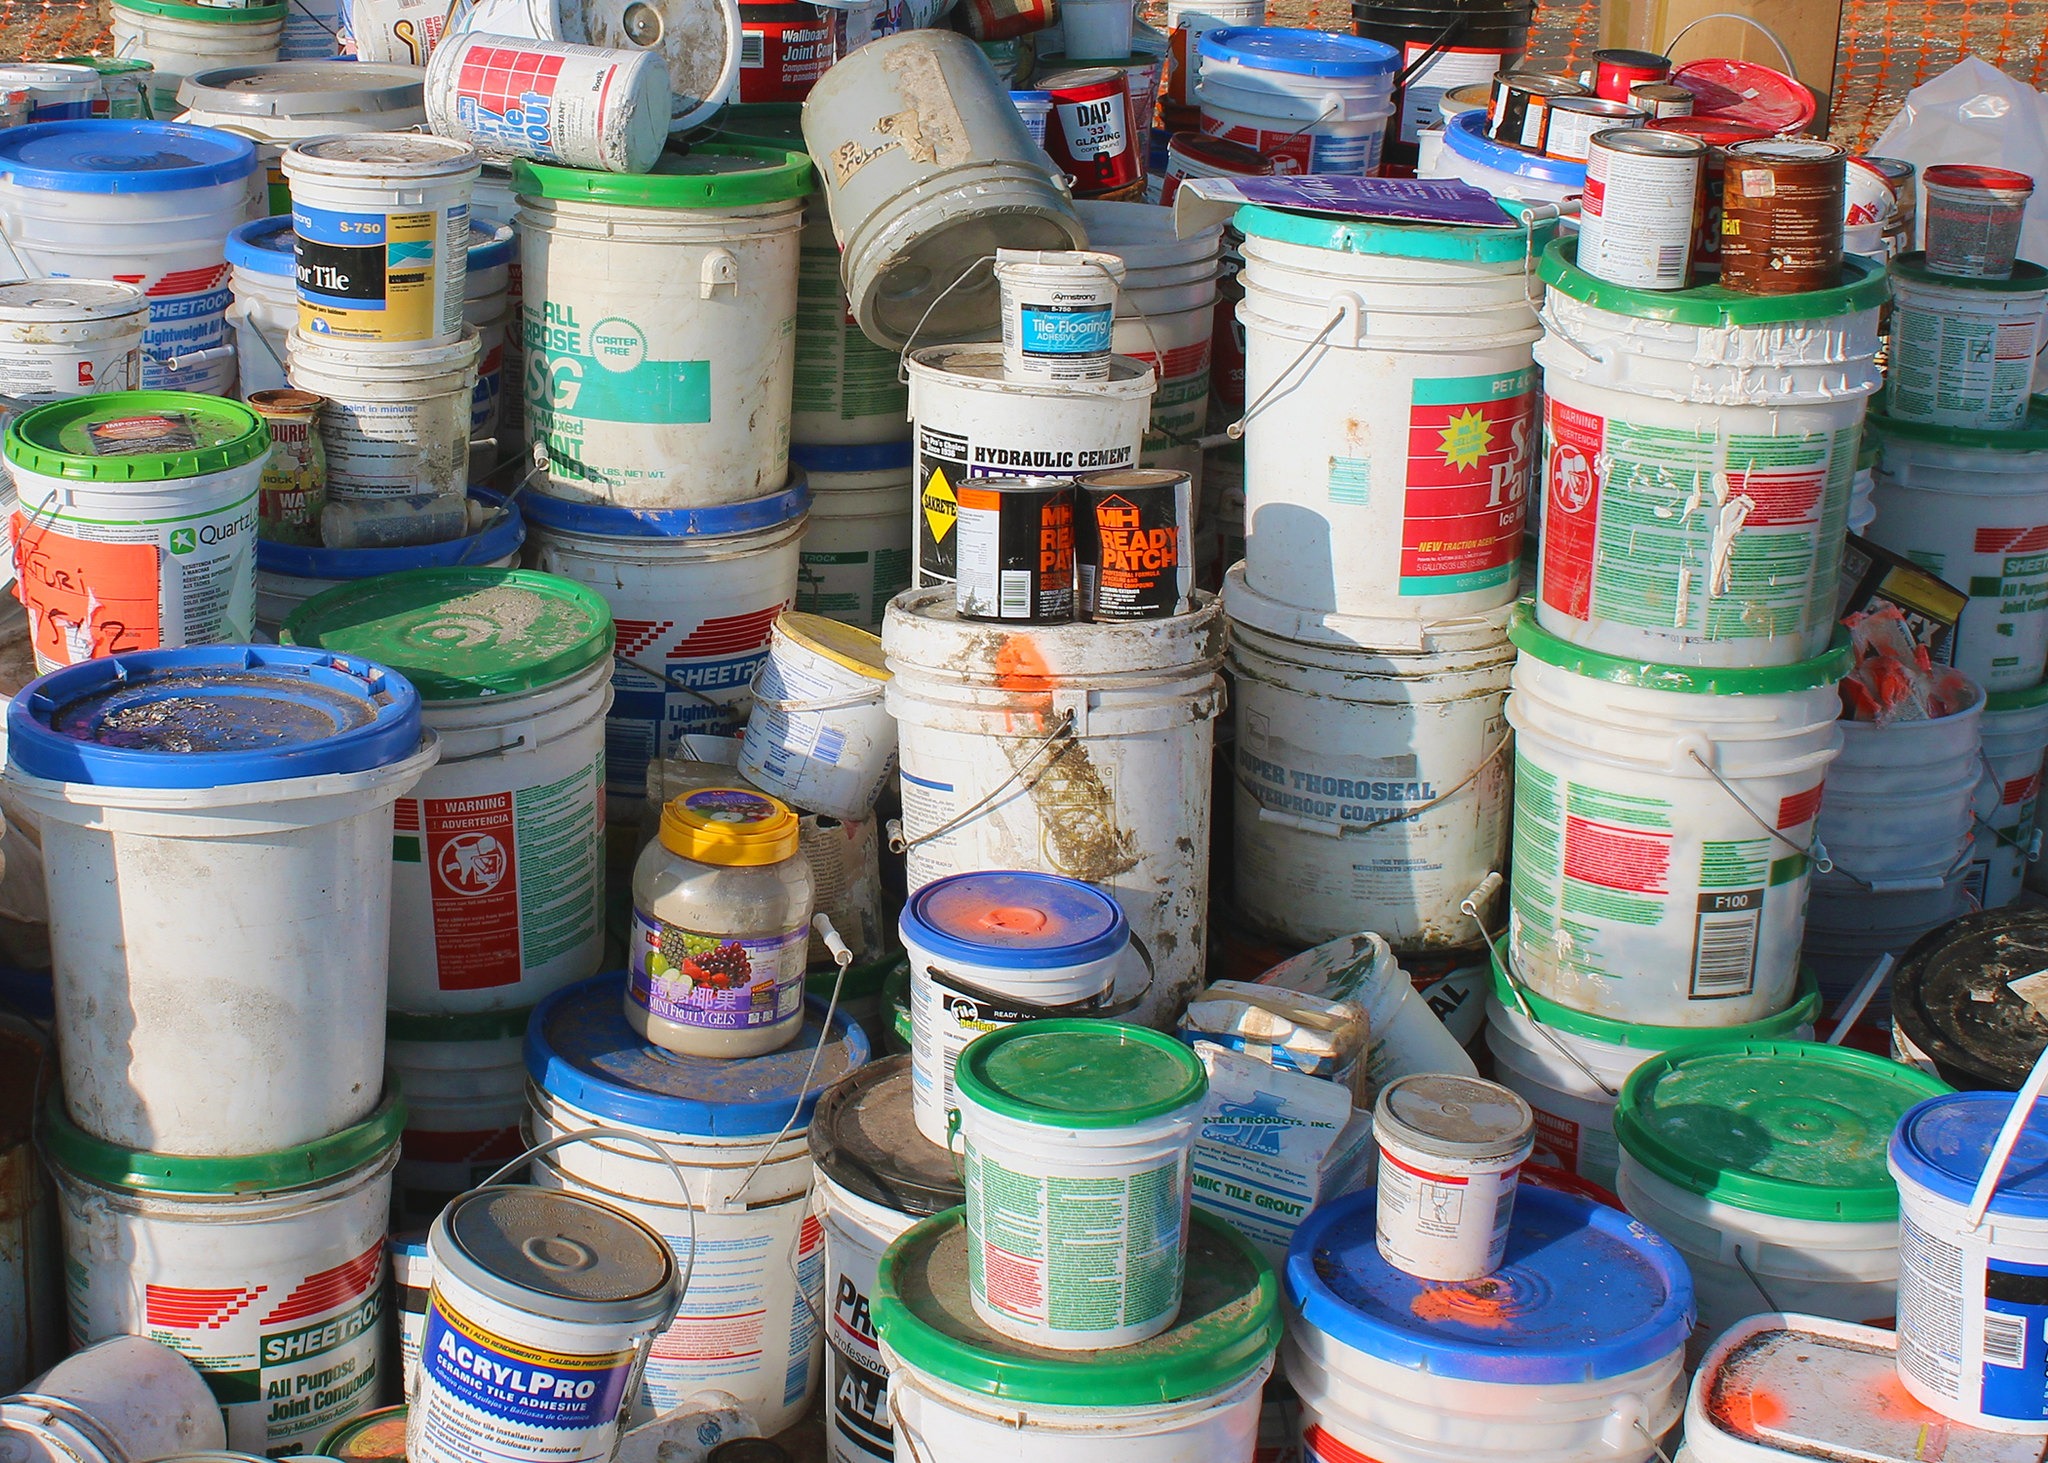 Hazardous Waste Collection Center